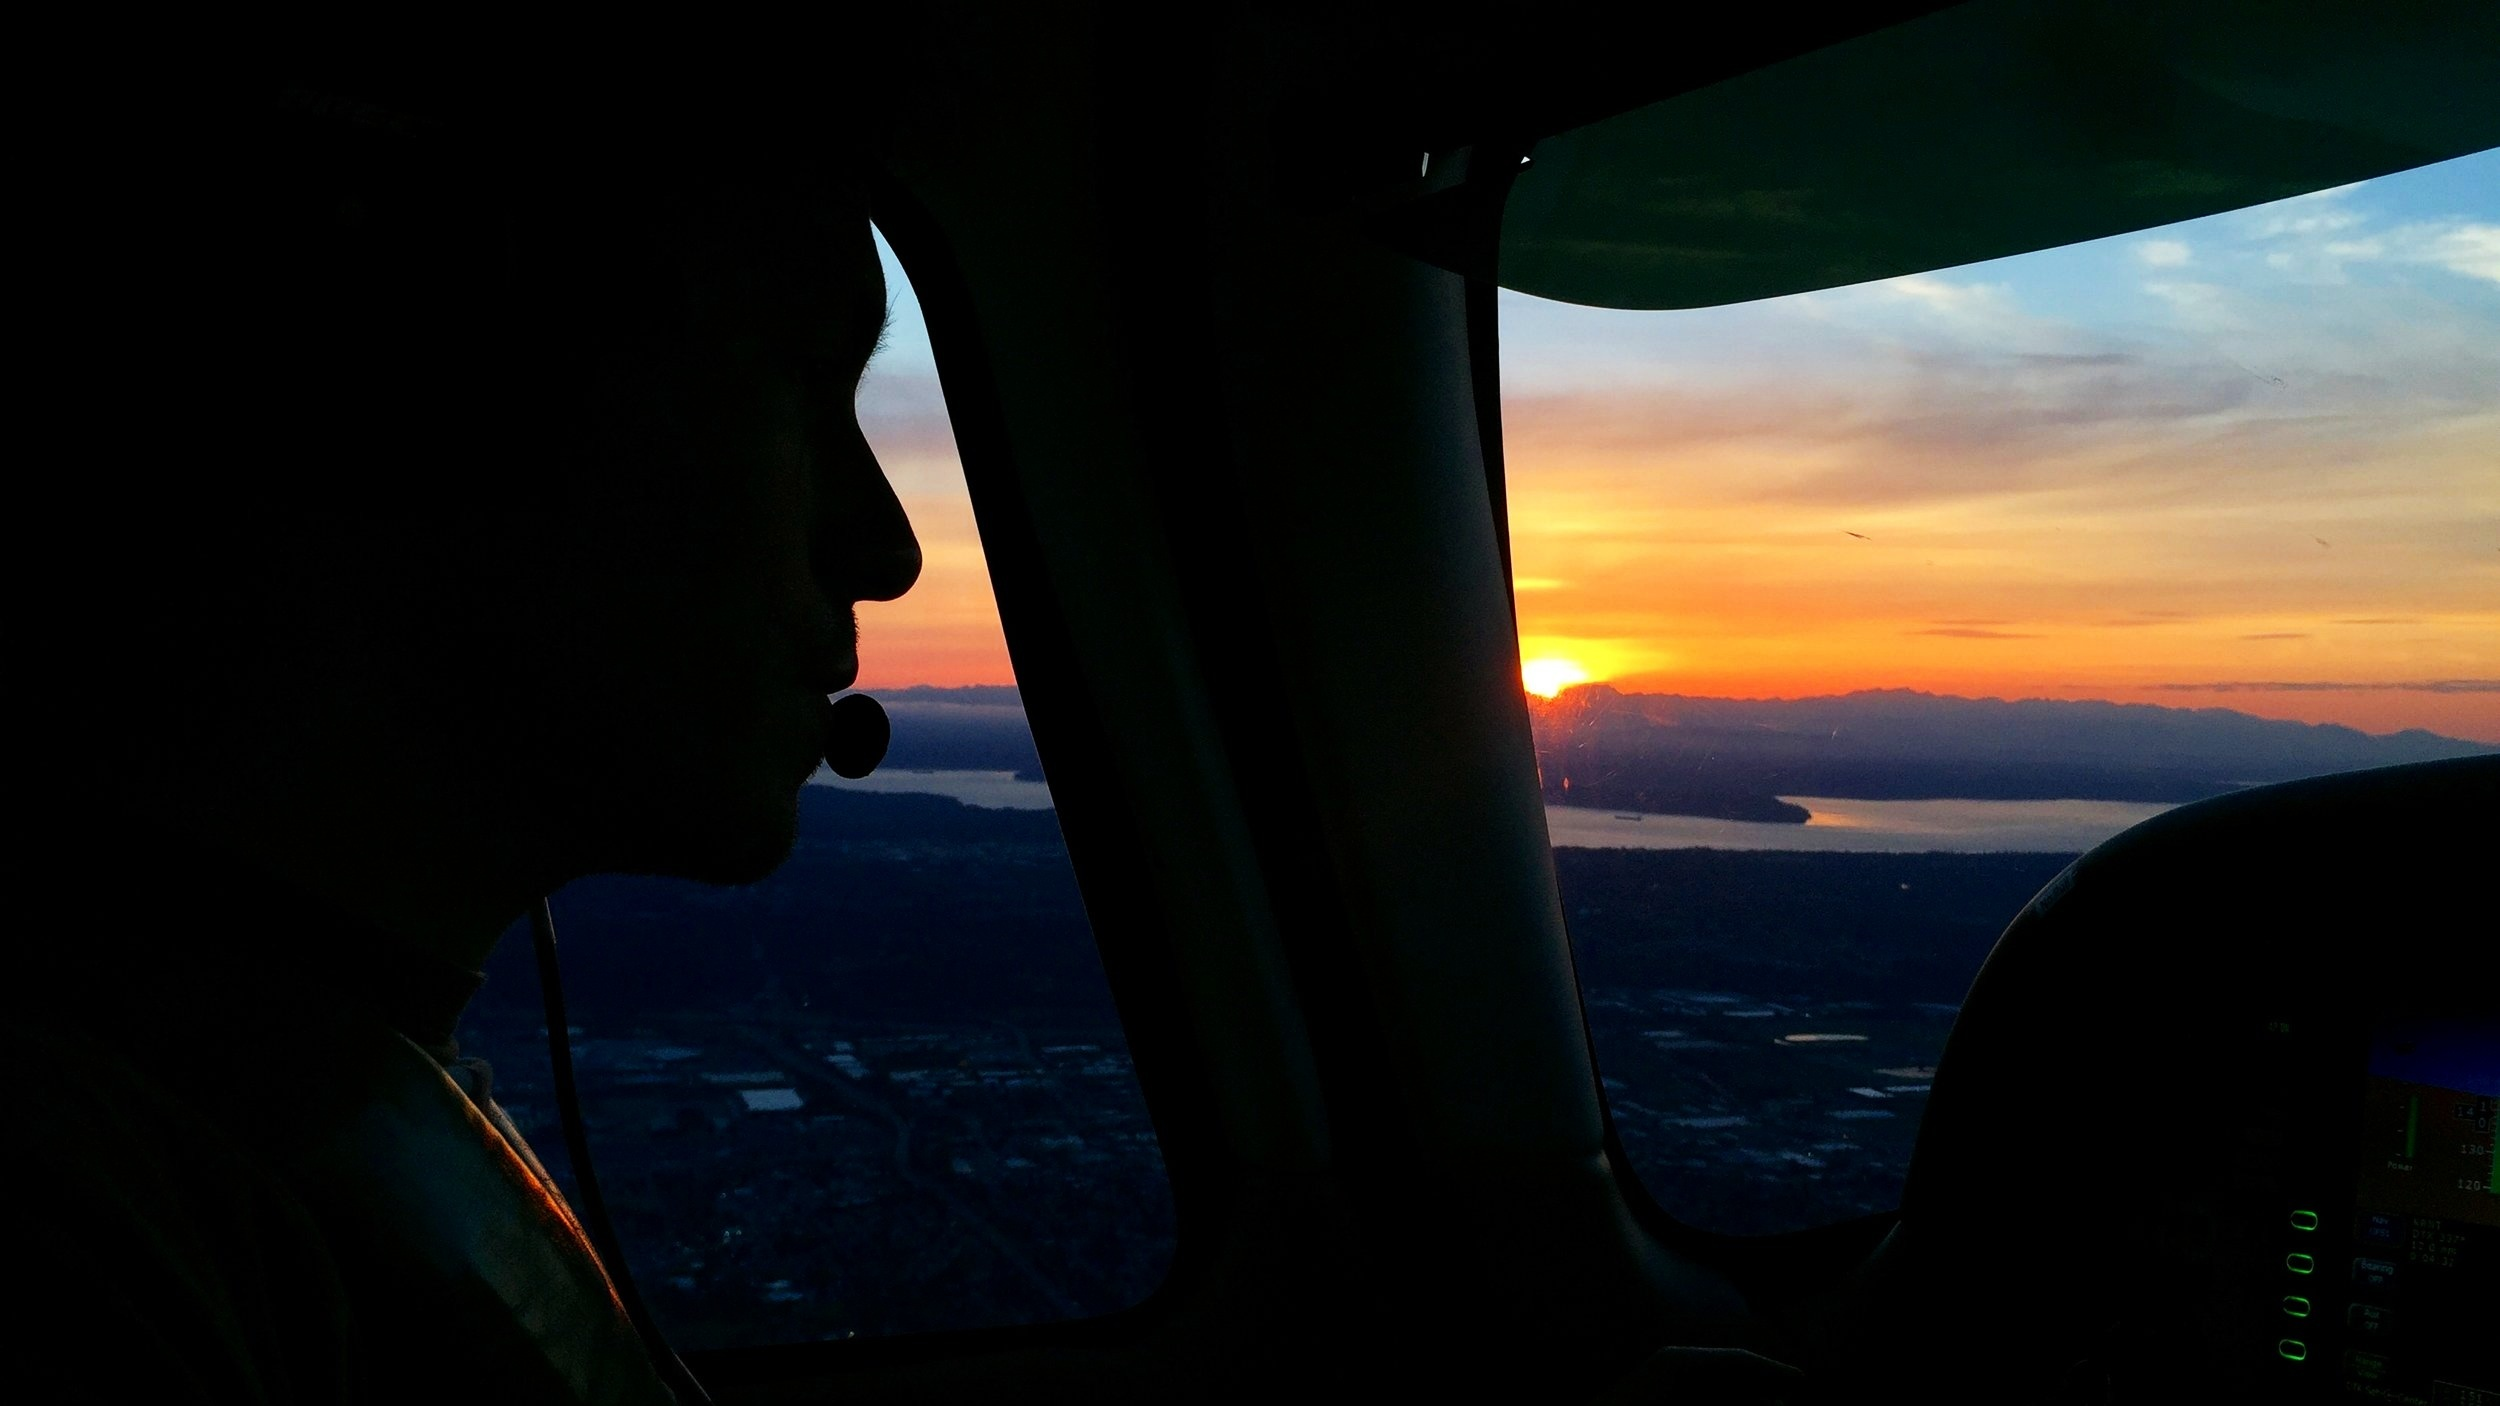 Sunset flying over Seattle, Washington May 2019